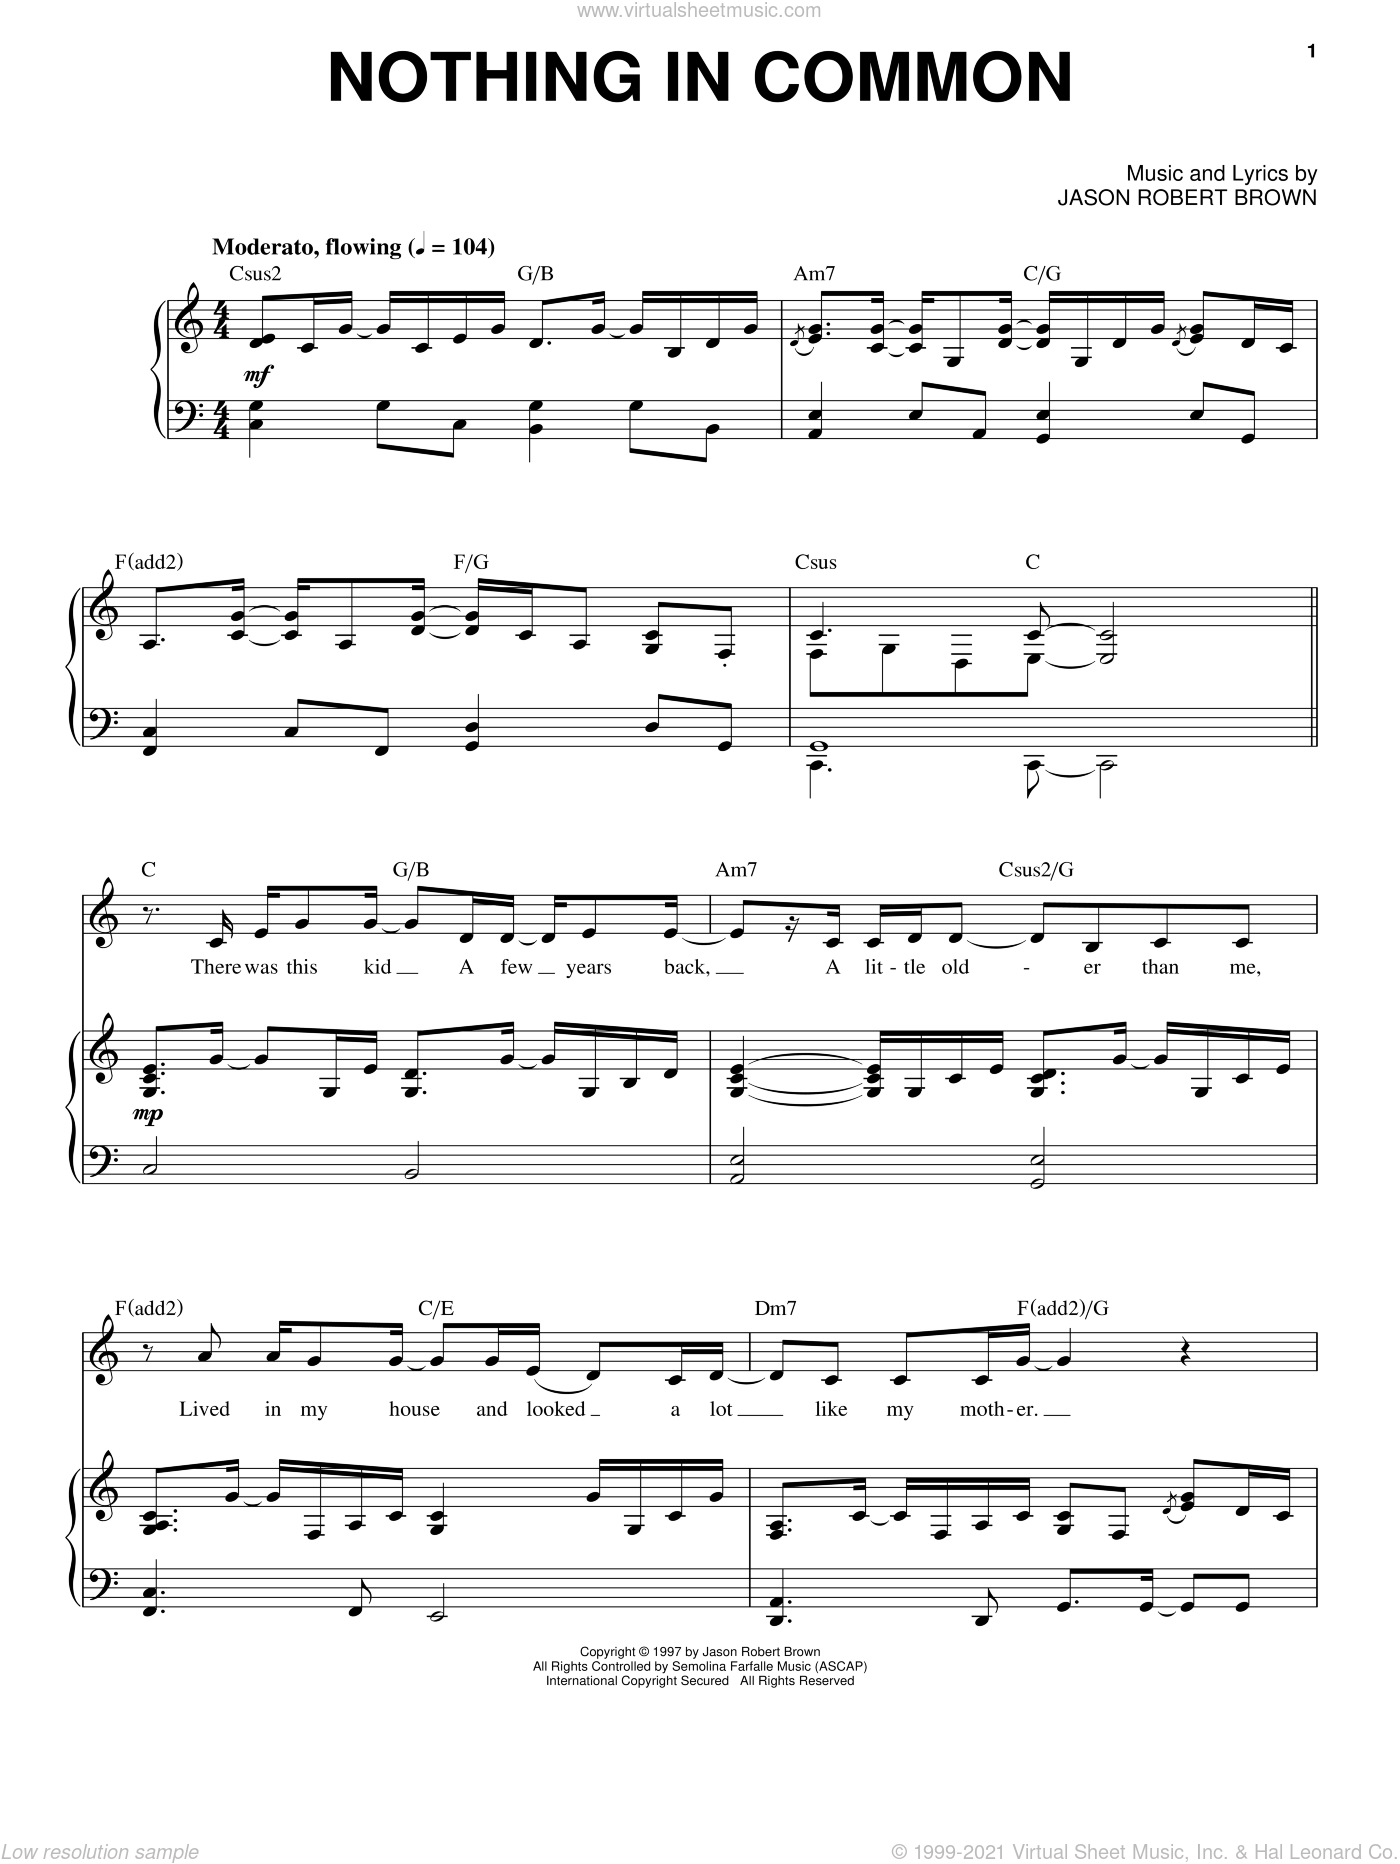 Nothing In Common sheet music for voice and piano by Jason Robert Brown. Score Image Preview.